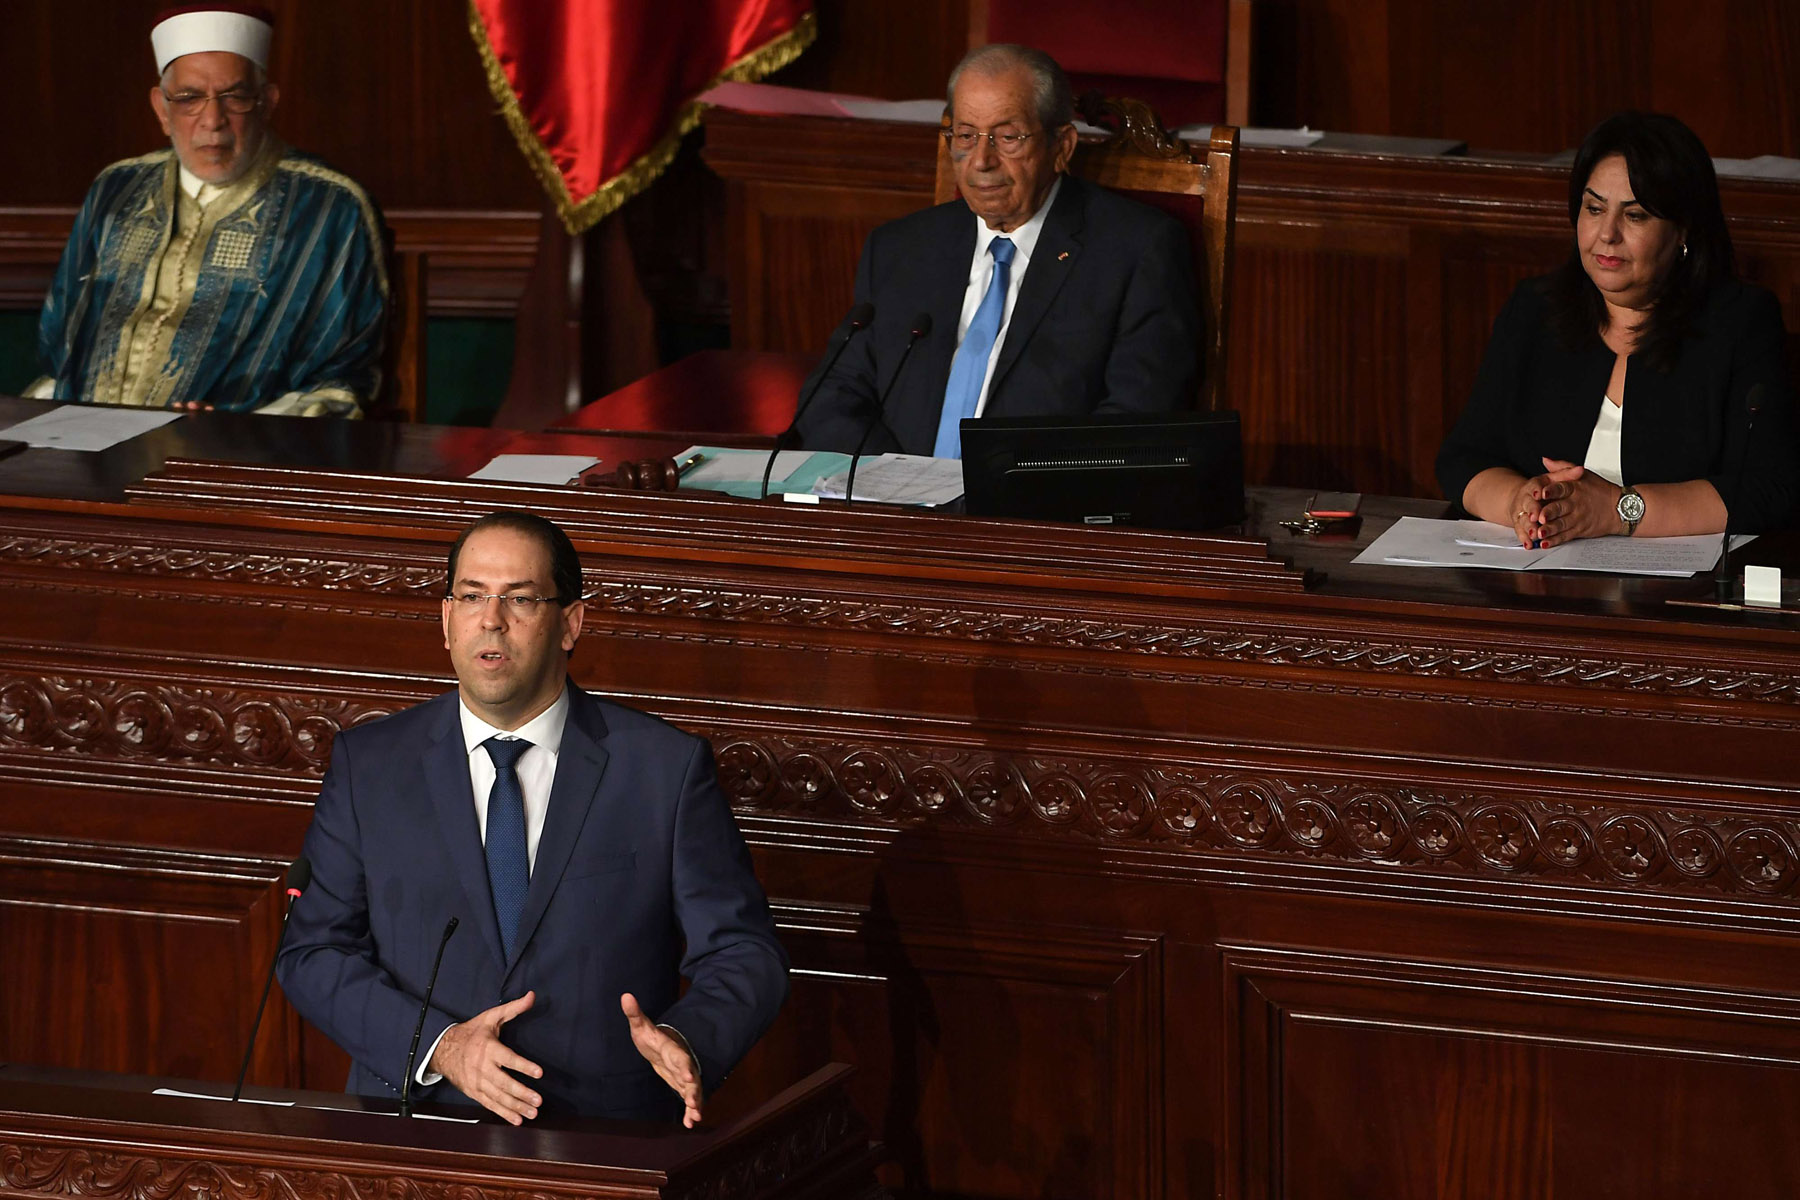 Tunisian Prime minister Youssef Chahed (2nd-L) gives a speech prior to a confidence bill during a plenary session at the Tunisian parliament in the capital Tunis on July 28, 2018. (AFP)